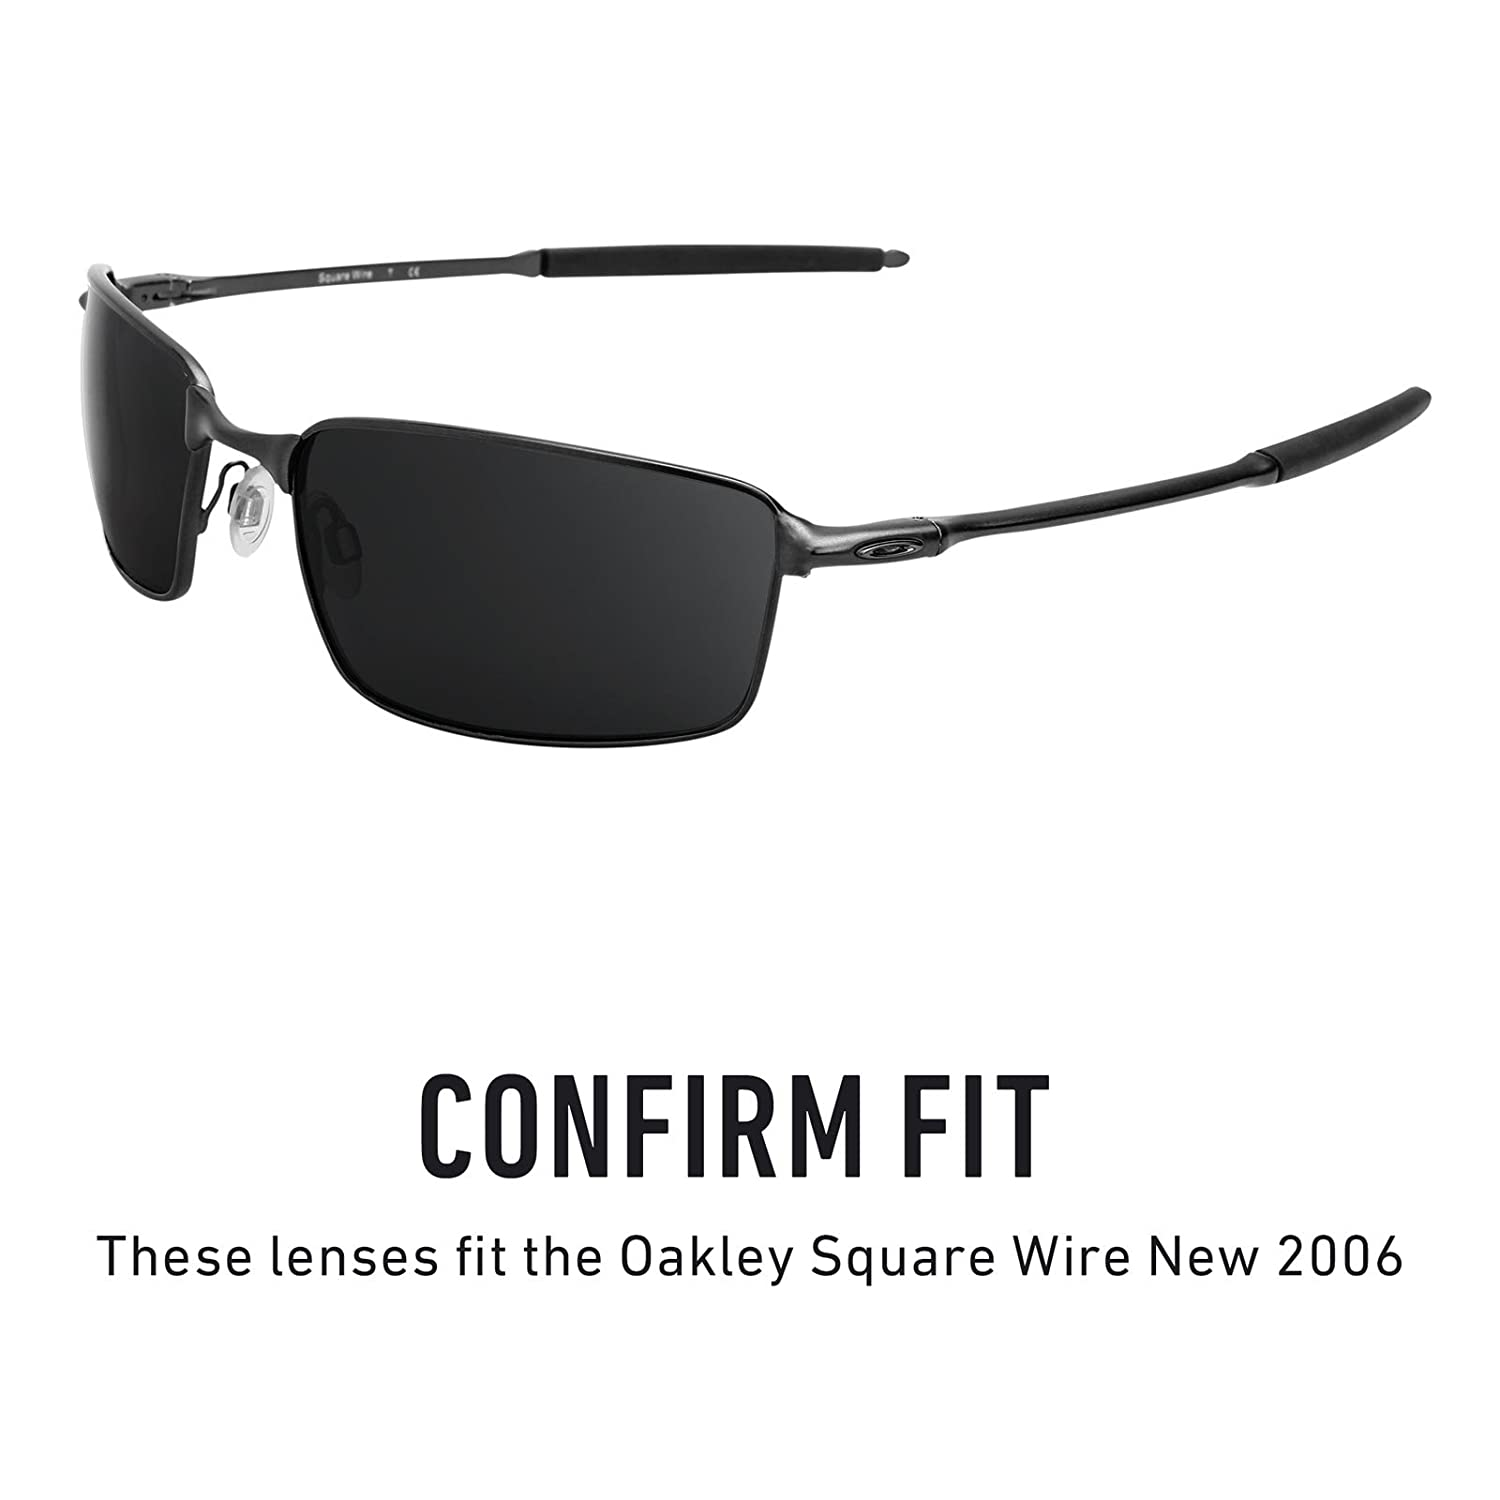 14b88766fce Amazon.com  Revant Replacement Lenses for Oakley Square Wire New (2006)  Elite Adapt Grey Photochromic  Sports   Outdoors